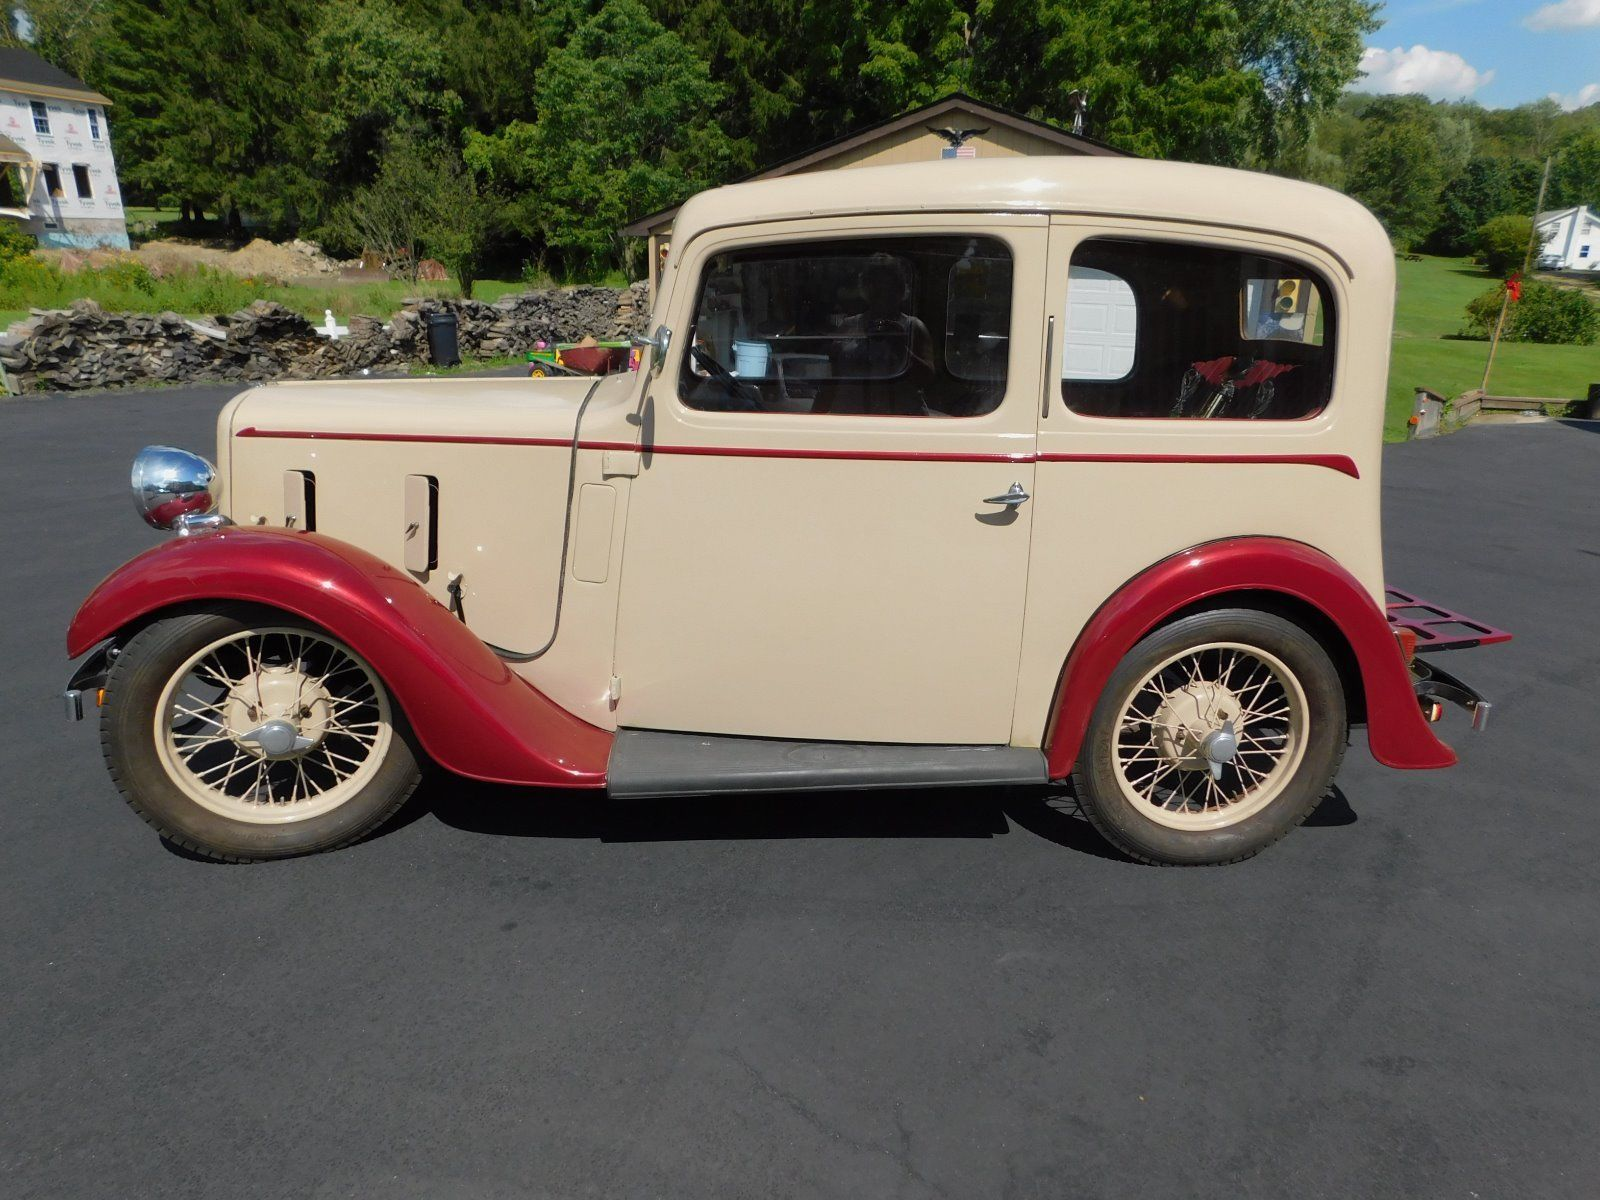 1937 Austin Seven Ruby #Auction #ForSale #Ebay | Auctions and For ...